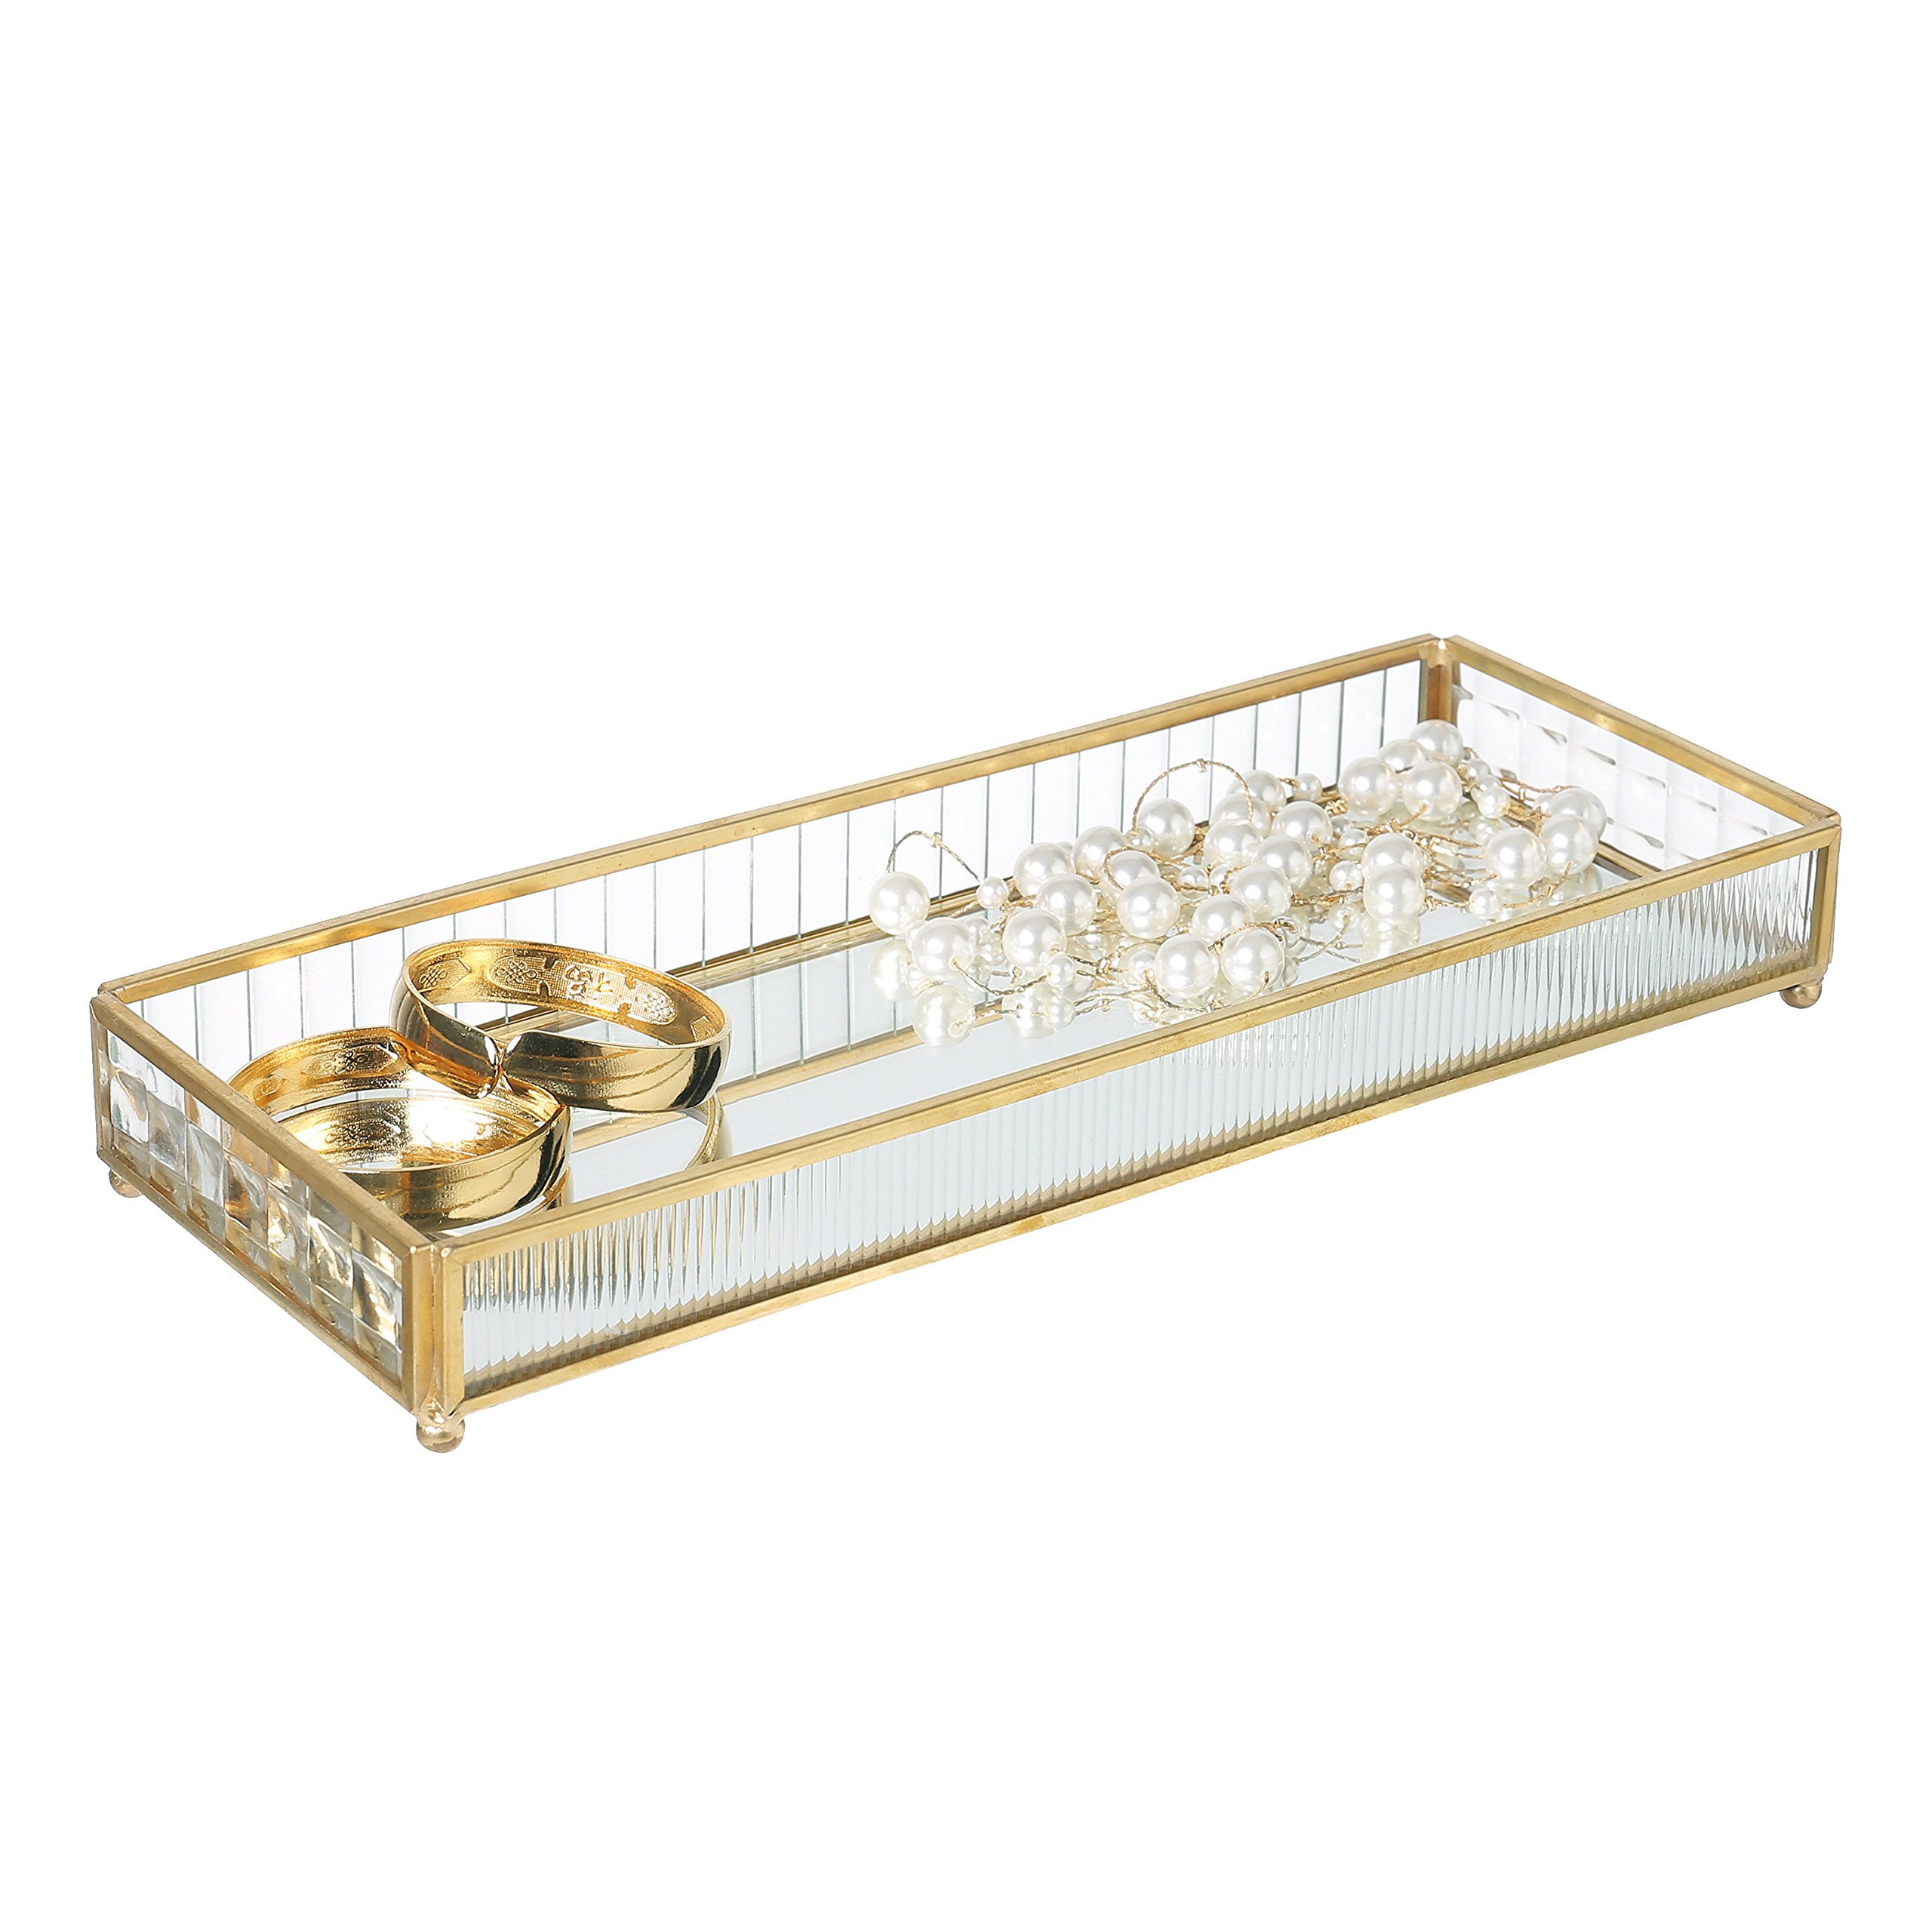 Rectangular Vintage Glass Jewelry Tray with Brass Trim and Mirror Base